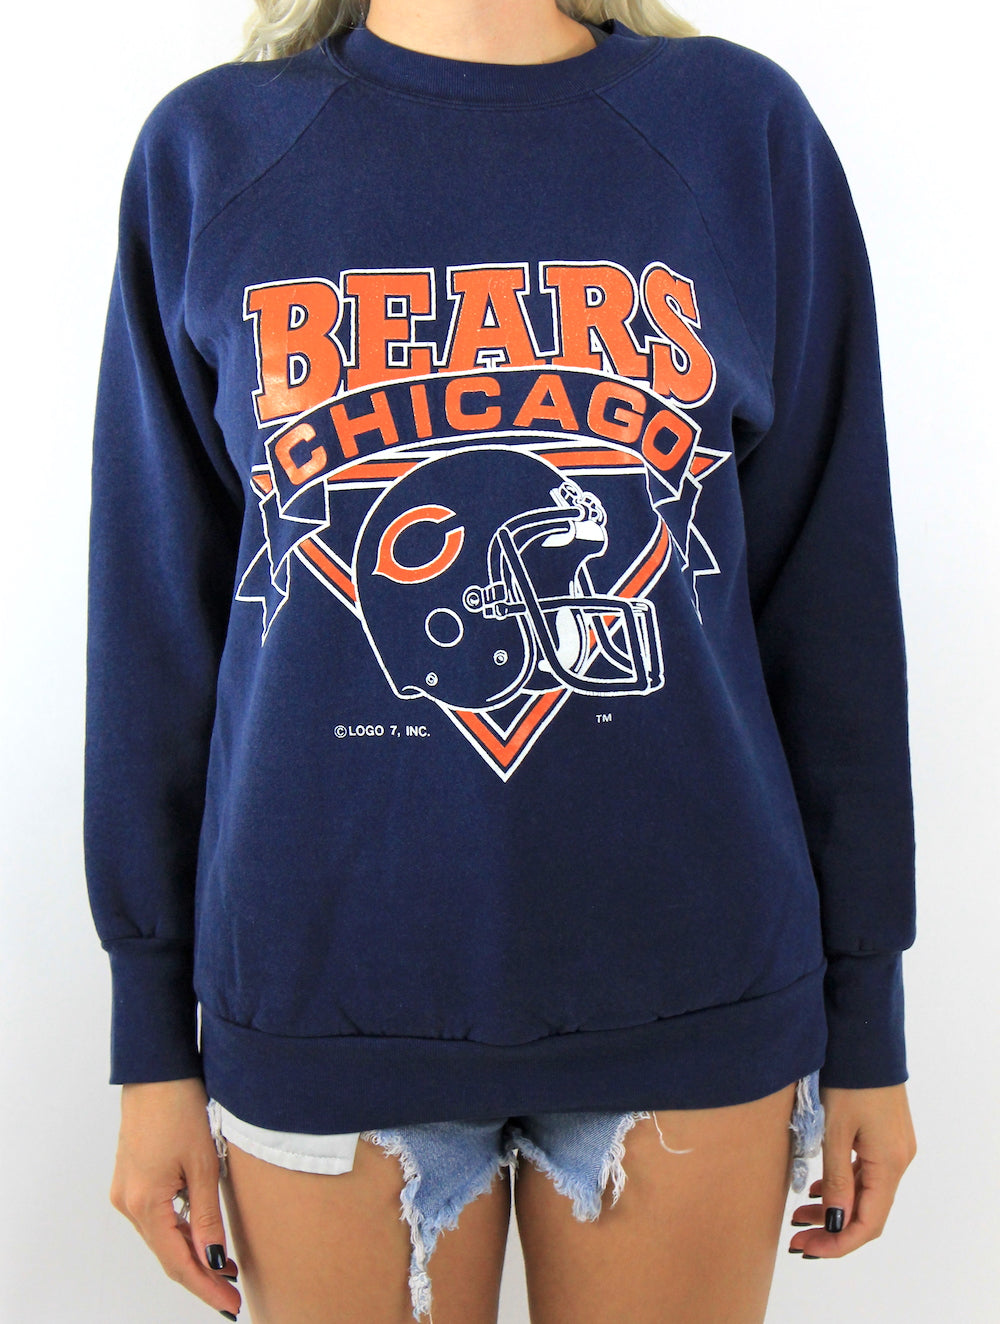 Vintage 80s Navy Blue Helmet Design Chicago Bears Sweatshirt